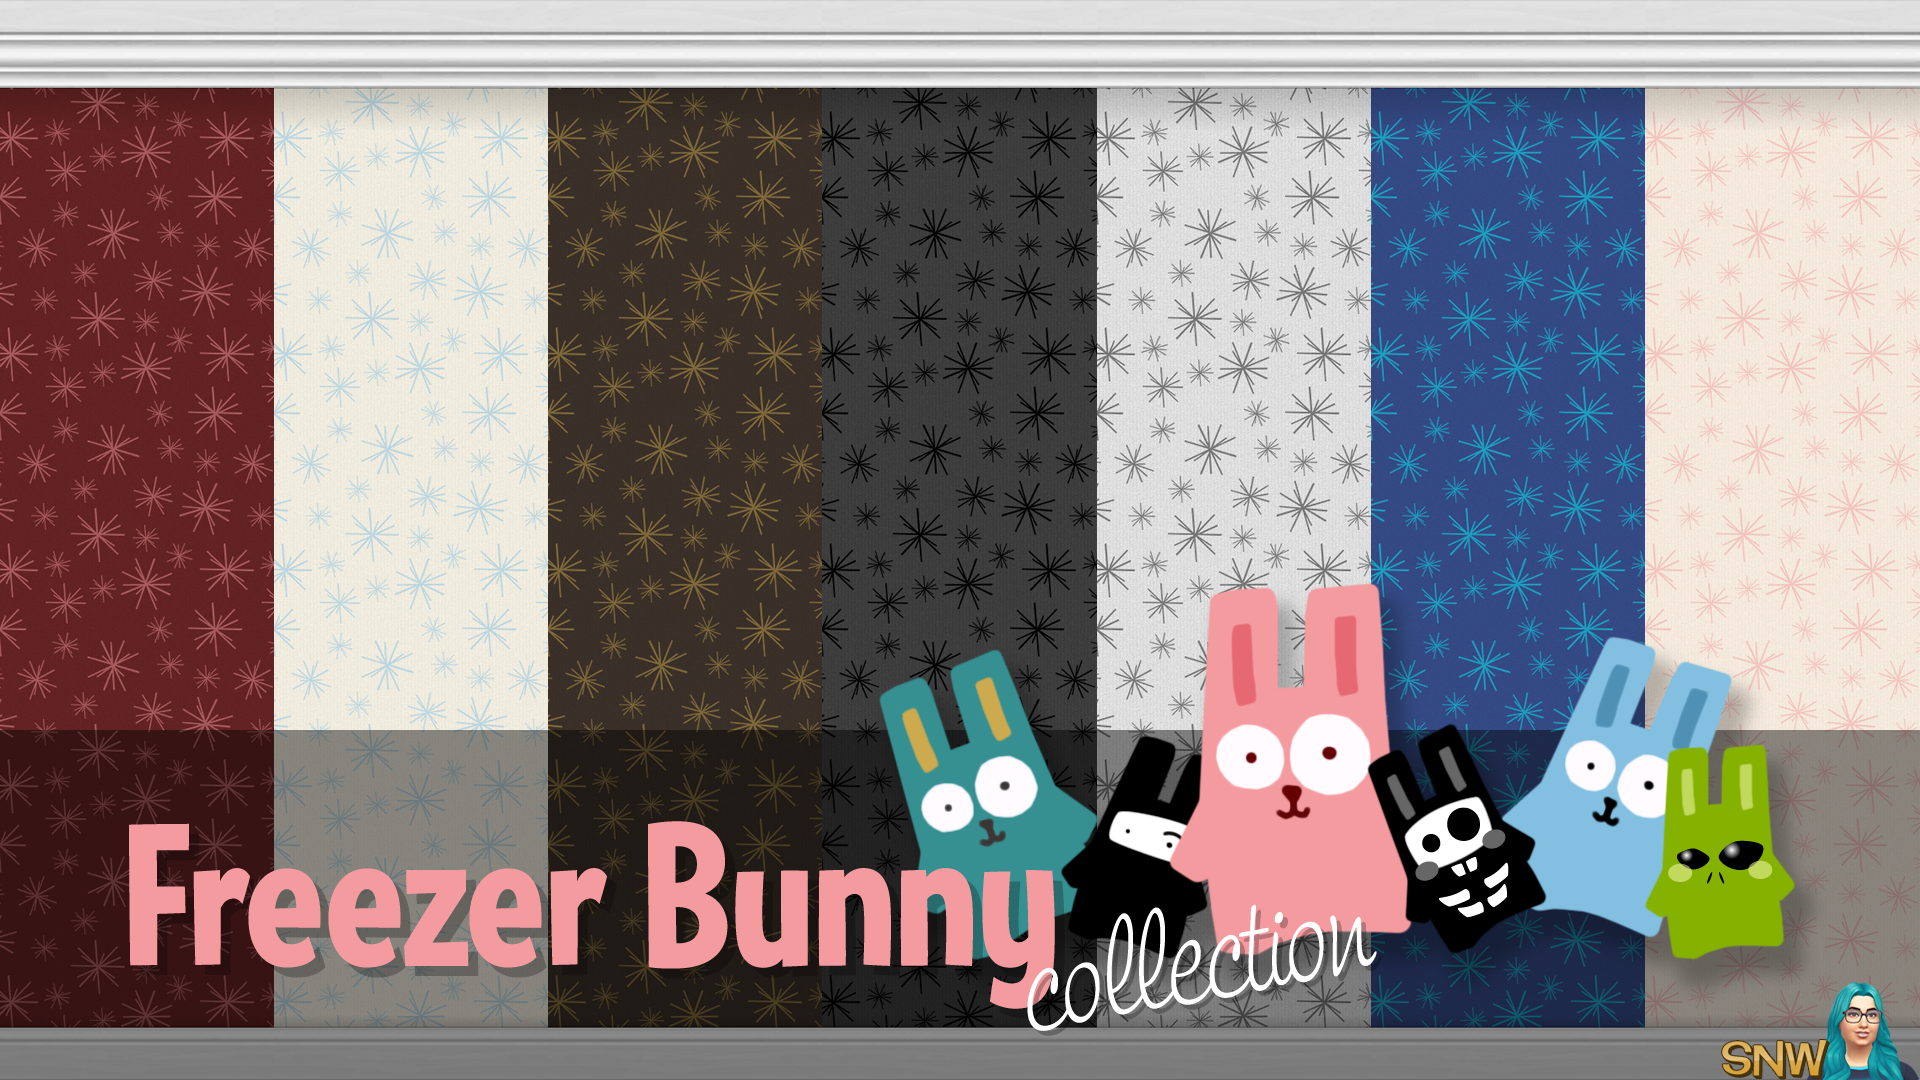 Freezer Bunny Collection: Starburst Wallpapers